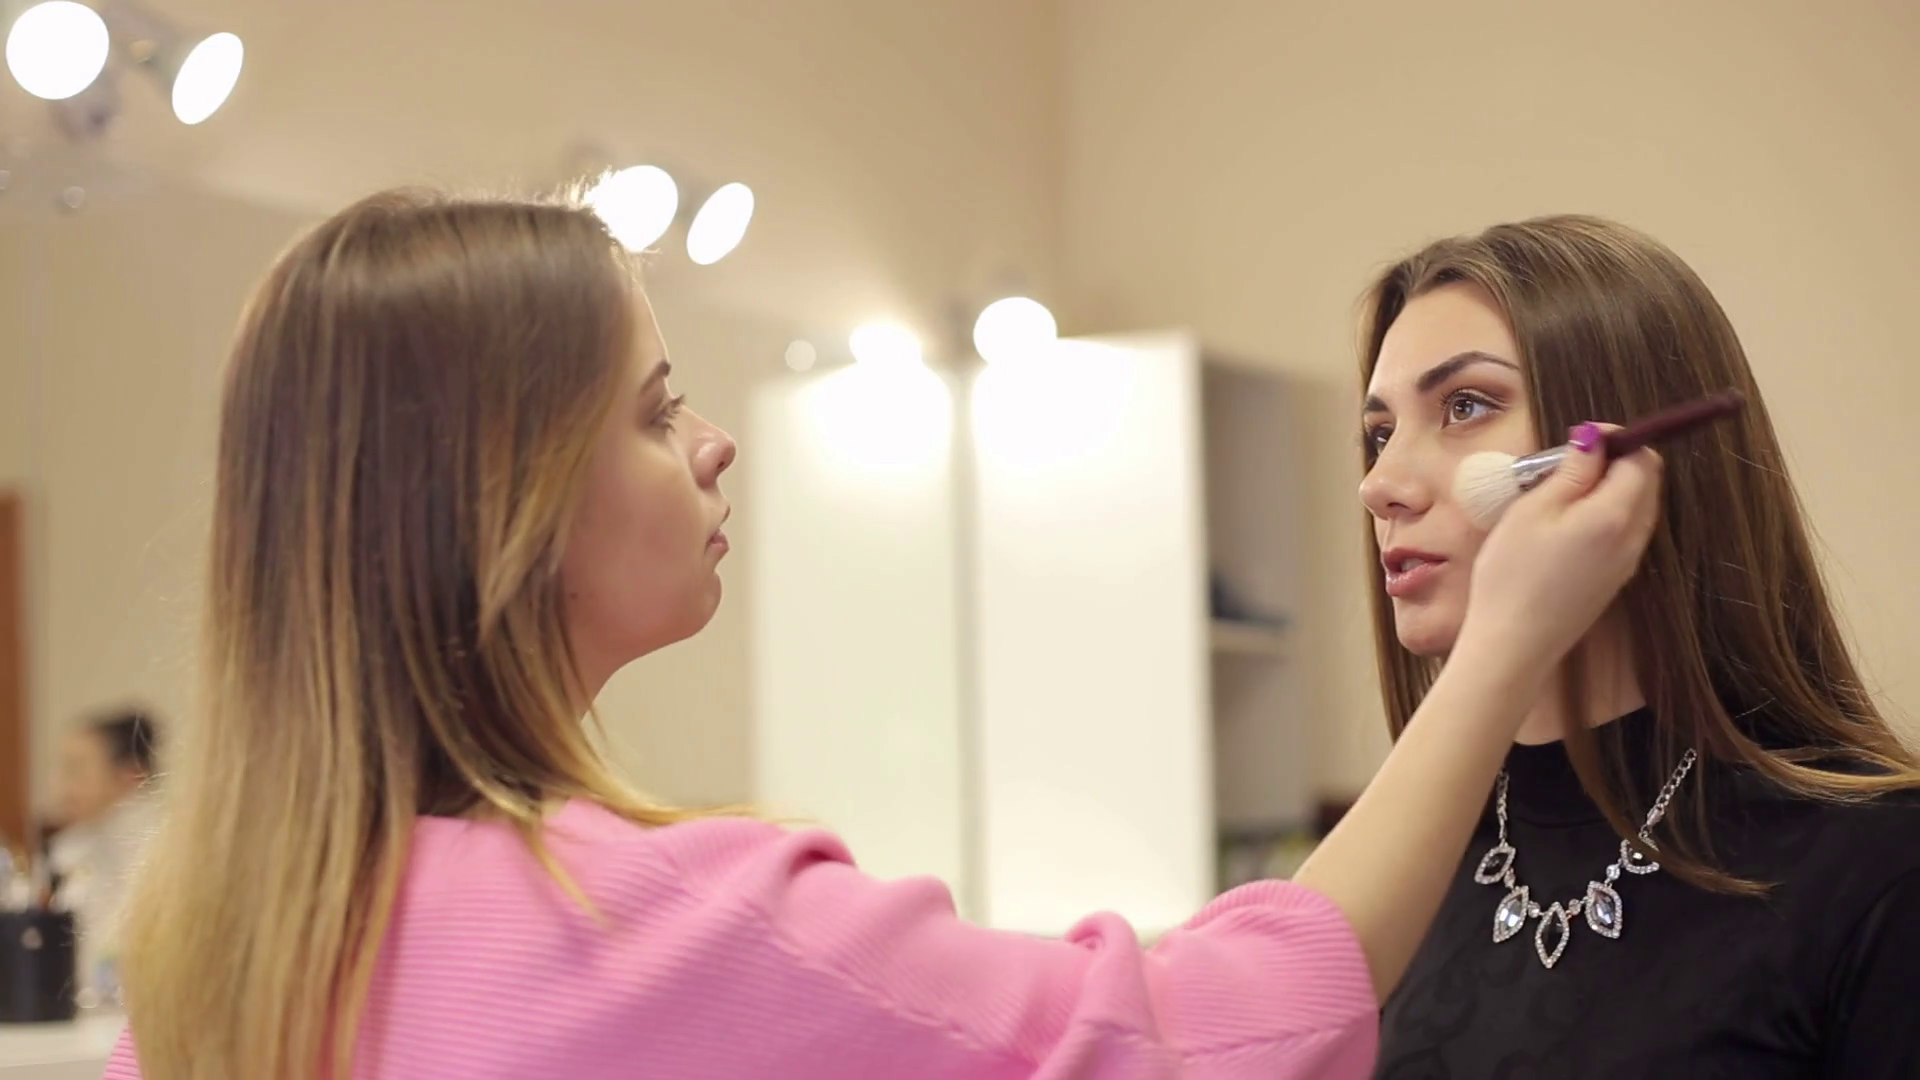 videoblocks-young-woman-applying-makeup-to-model-in-beauty-salon-make-up-artist-at-the-work-with-client_rwx2qv4cx_thumbnail-full01.png